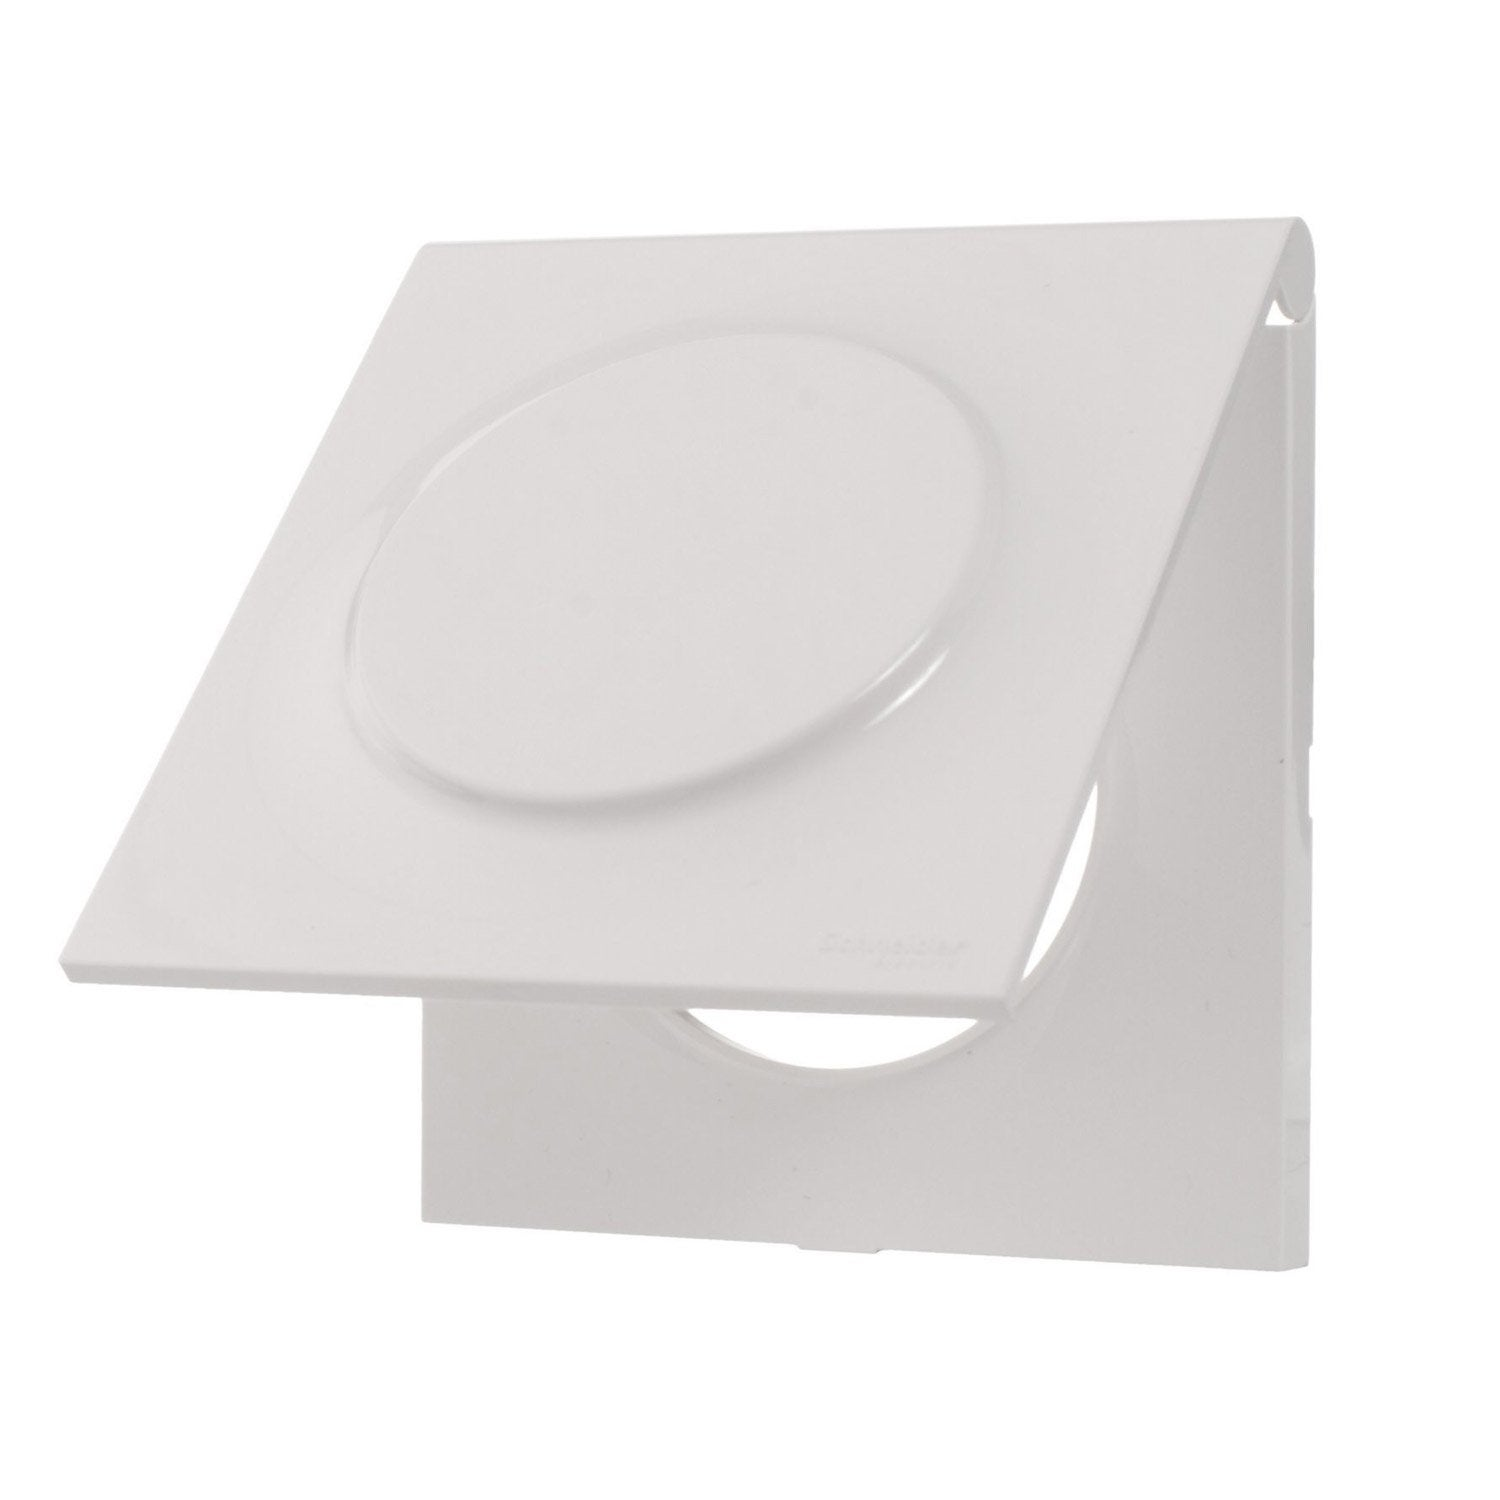 Plaque simple odace schneider electric blanc leroy merlin - Cache prise leroy merlin ...